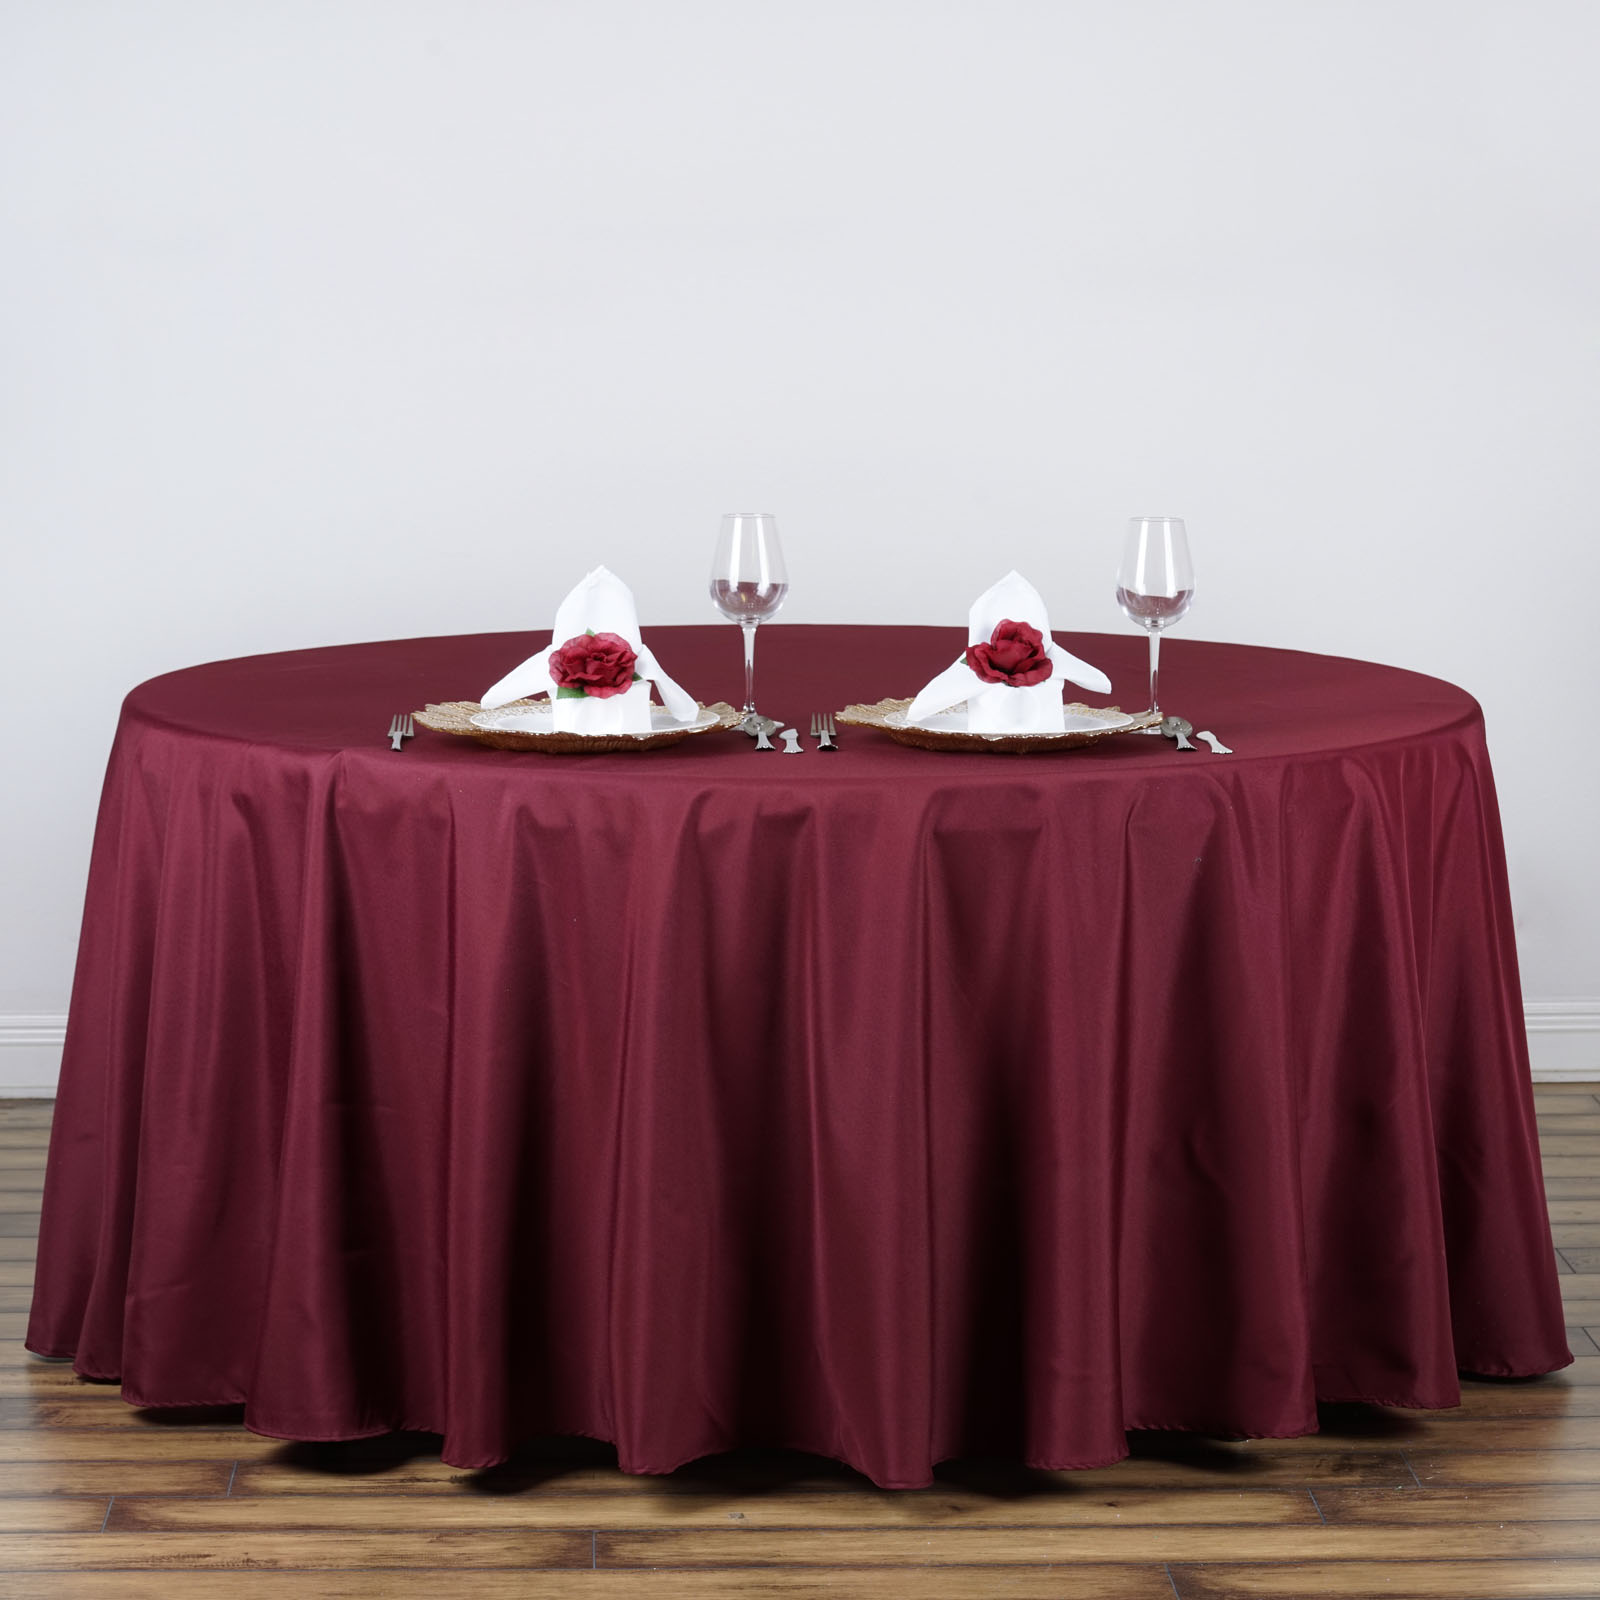 132 Round Polyester Tablecloths For Wedding Party Linens SUPPLY WHOLESA